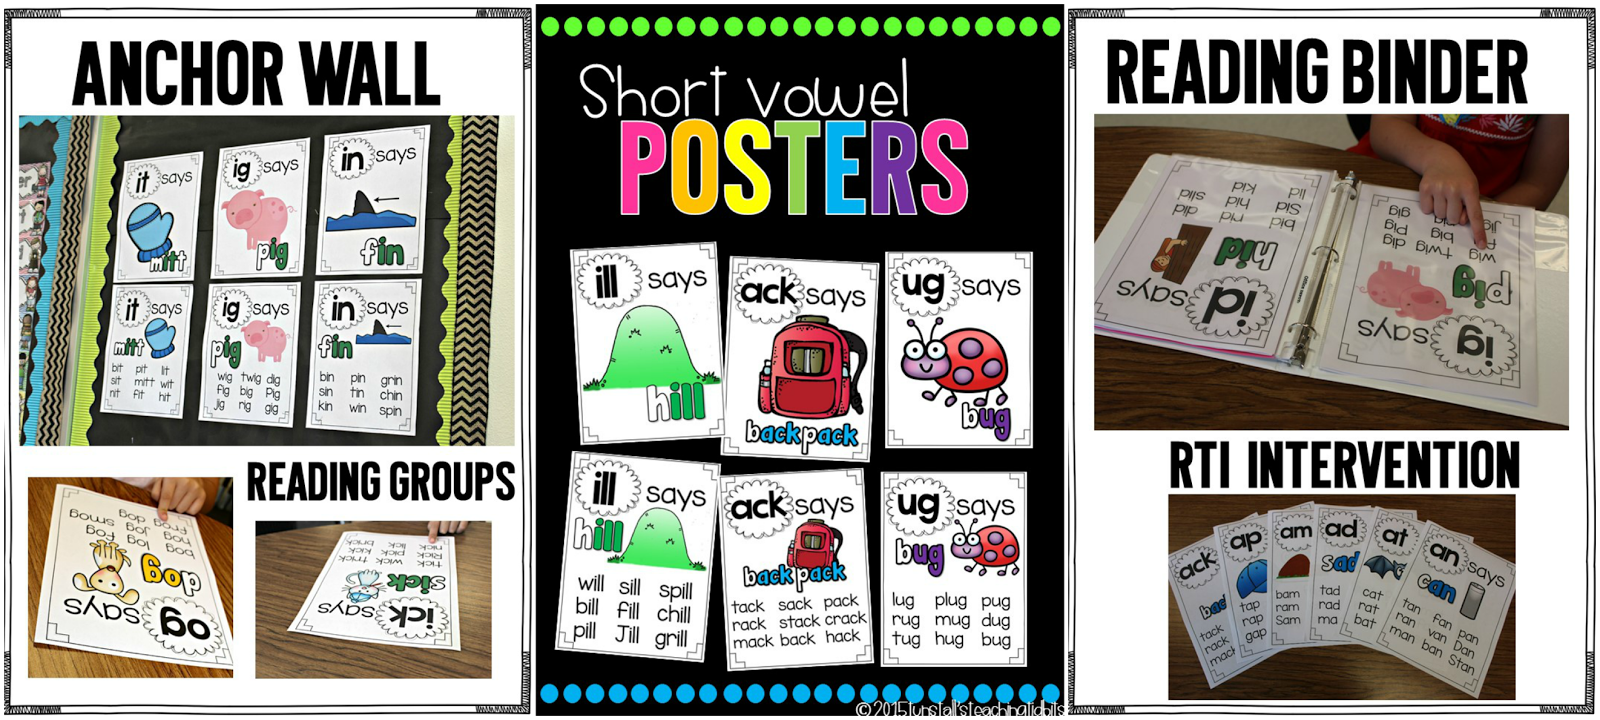 https://www.teacherspayteachers.com/Product/Phonics-Posters-Short-Vowels-1818254